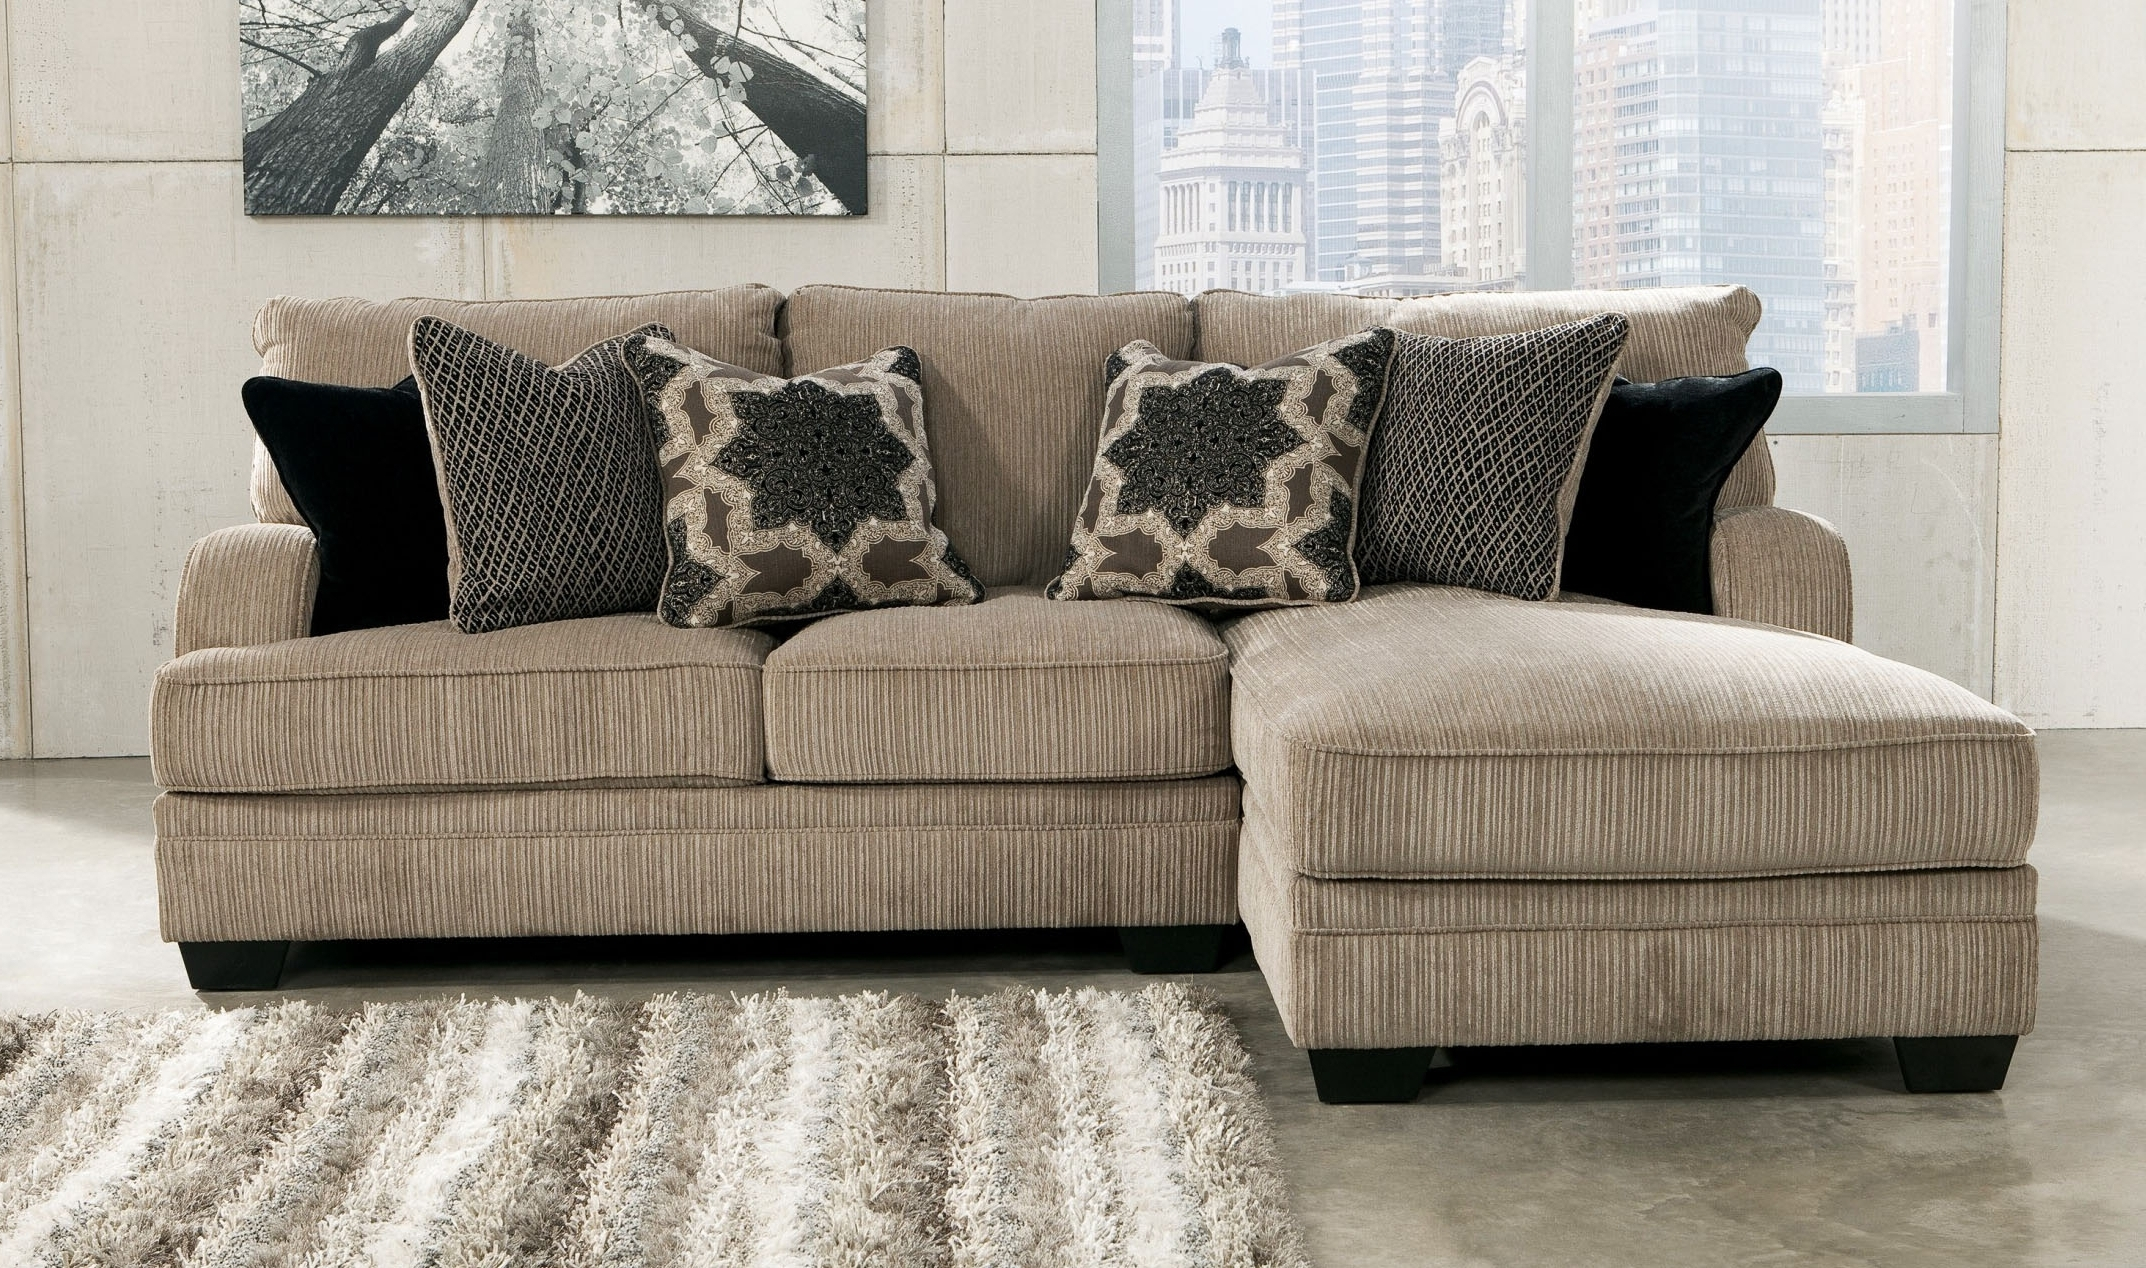 Well Known Inexpensive Sectional Sofas For Small Spaces Intended For Stylish Inexpensive Sectional Sofas For Small Spaces (View 15 of 15)